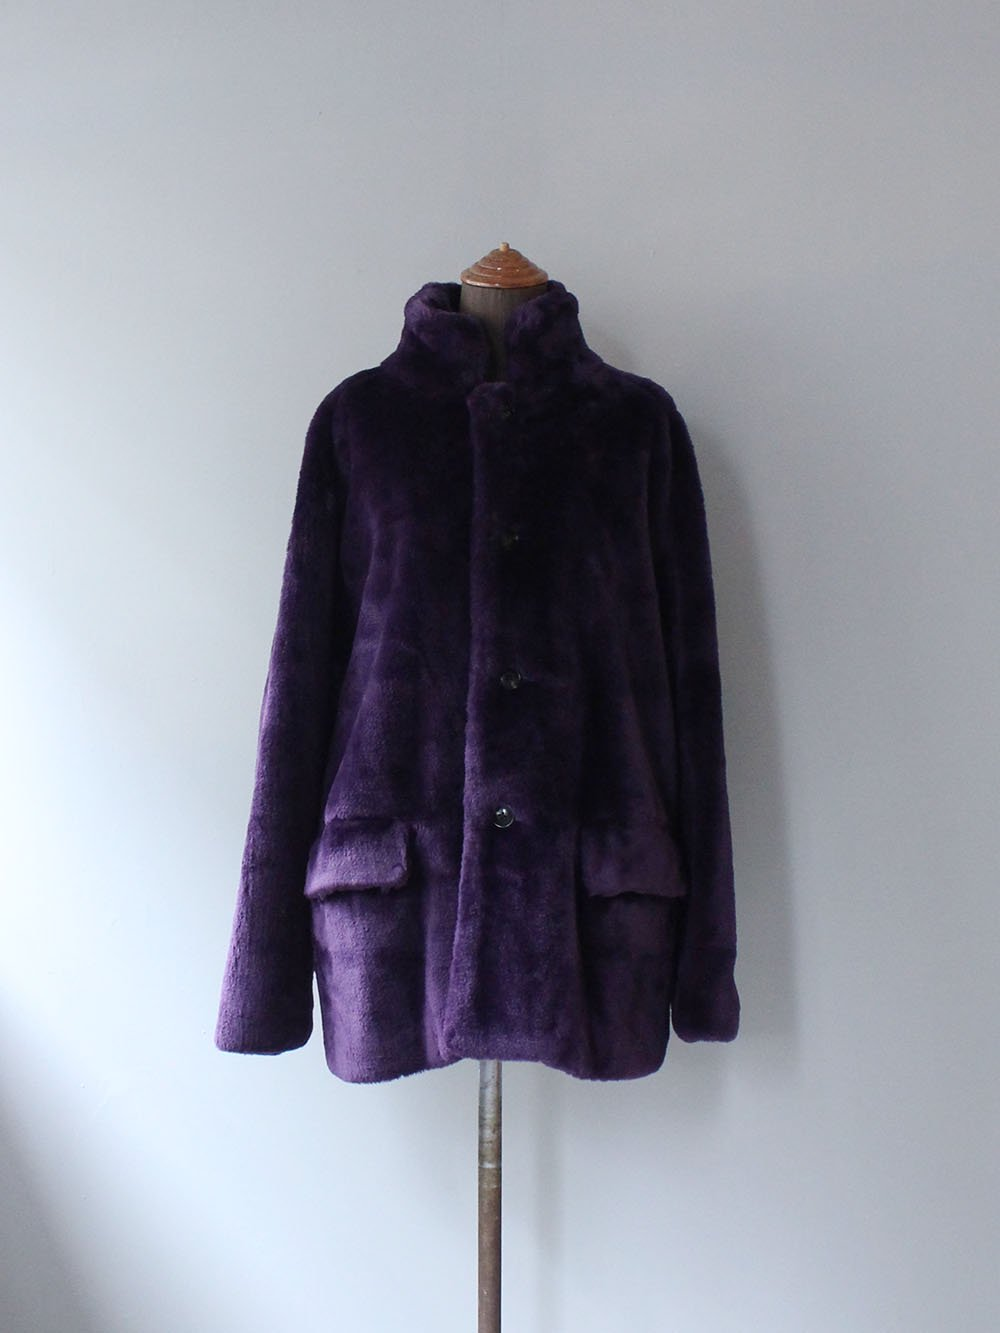 """<img class='new_mark_img1' src='https://img.shop-pro.jp/img/new/icons8.gif' style='border:none;display:inline;margin:0px;padding:0px;width:auto;' />Needles """" S.C. CAR COAT - FAUX FUR (PURPLE)"""""""